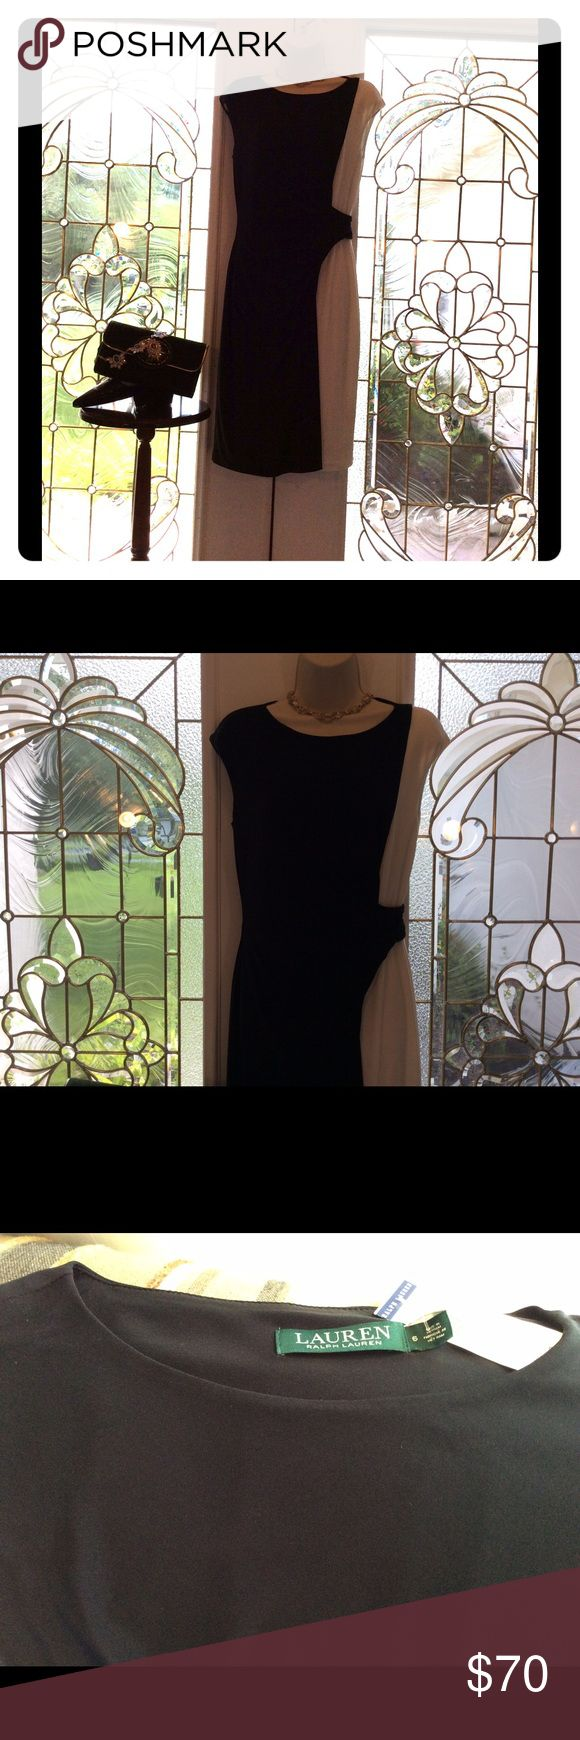 💗RALPH LAUREN COCKTAIL DRESS💗 Classy cocktail dress will fit your curves in all the right places. Wear to almost any occasion. Lauren Ralph Lauren Dresses